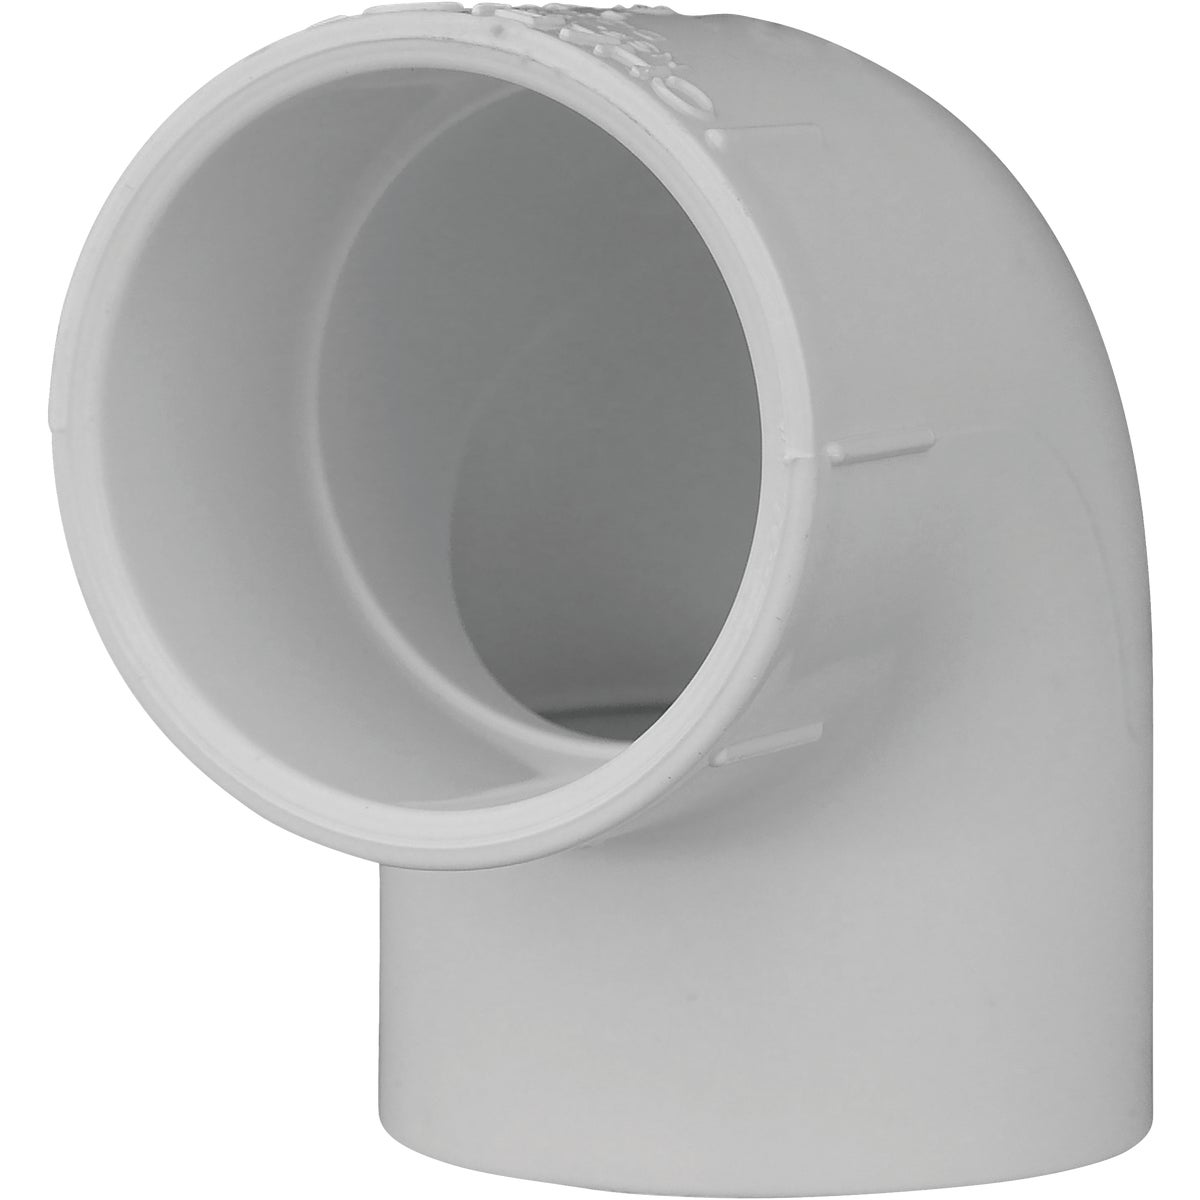 "1-1/2"" PVC SXS 90D ELBOW - 30715 by Genova Inc"